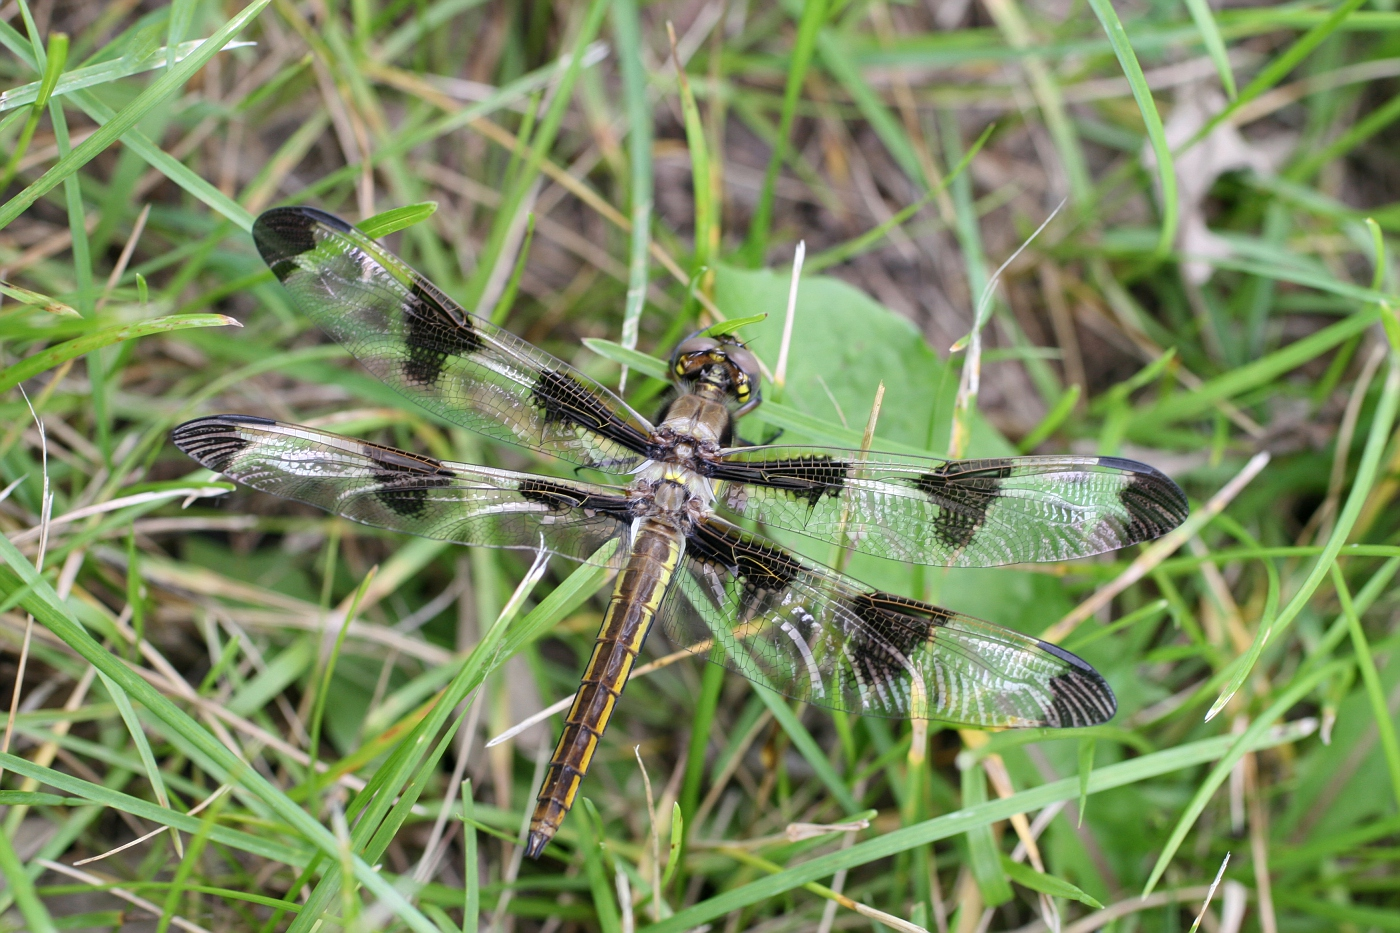 Newly Emerged Twelve-spotted Skimmer